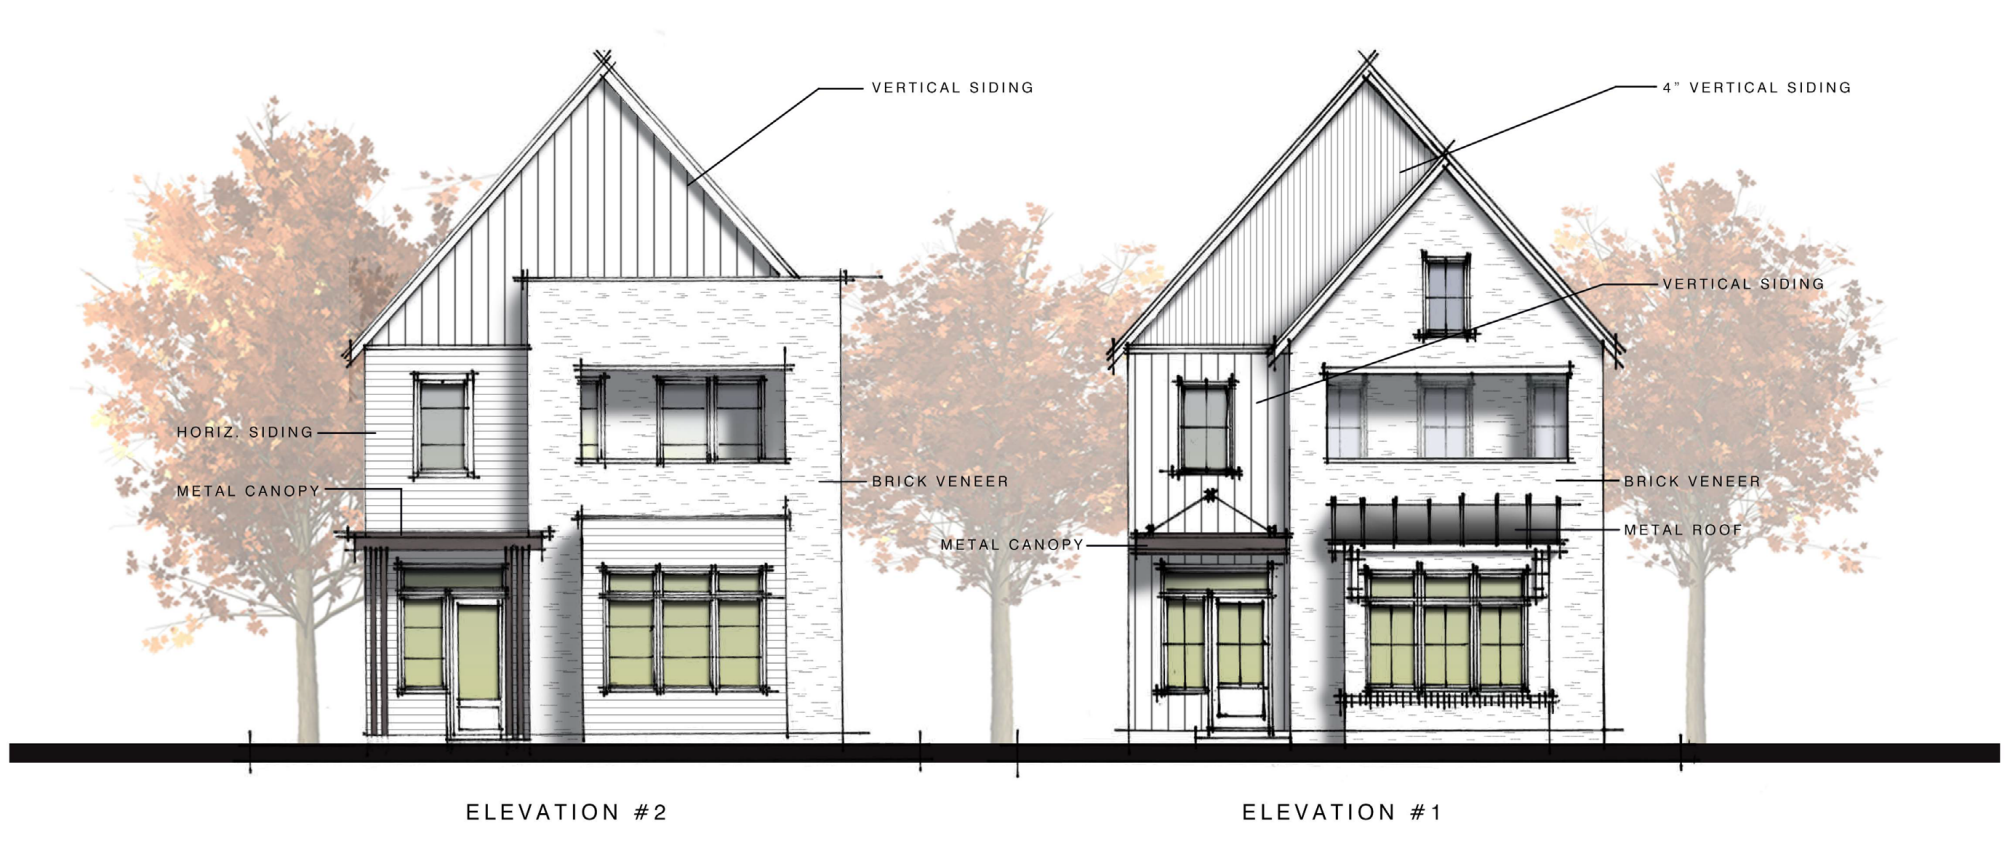 A rendering of the houses Monte Hewett plans to build